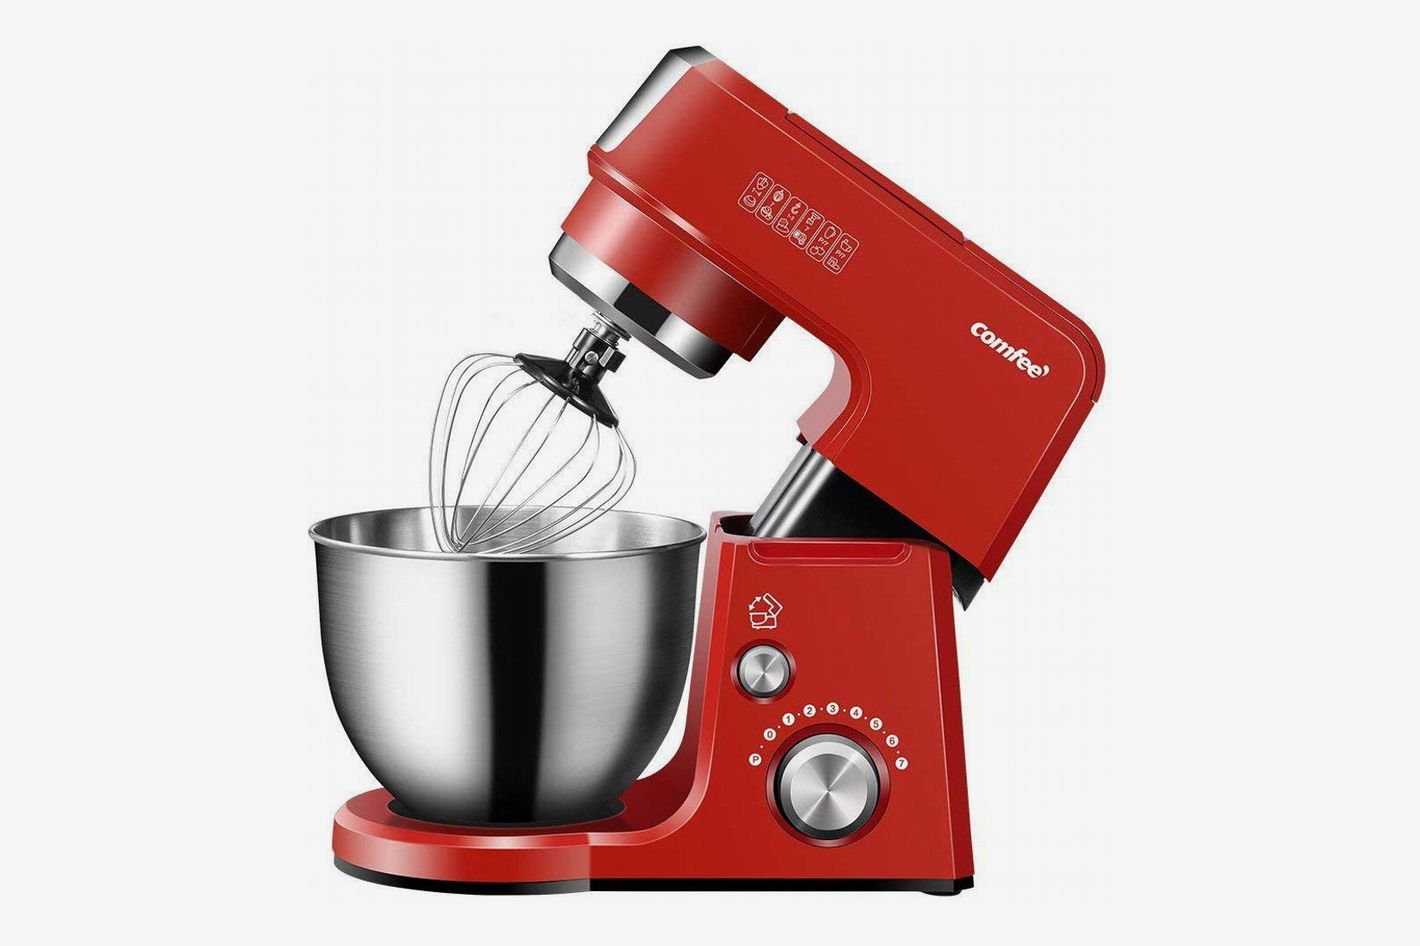 Comfee 2.6-Quart Die Cast 7-in-1 Multi-Function Tilt-Head Stand Mixer